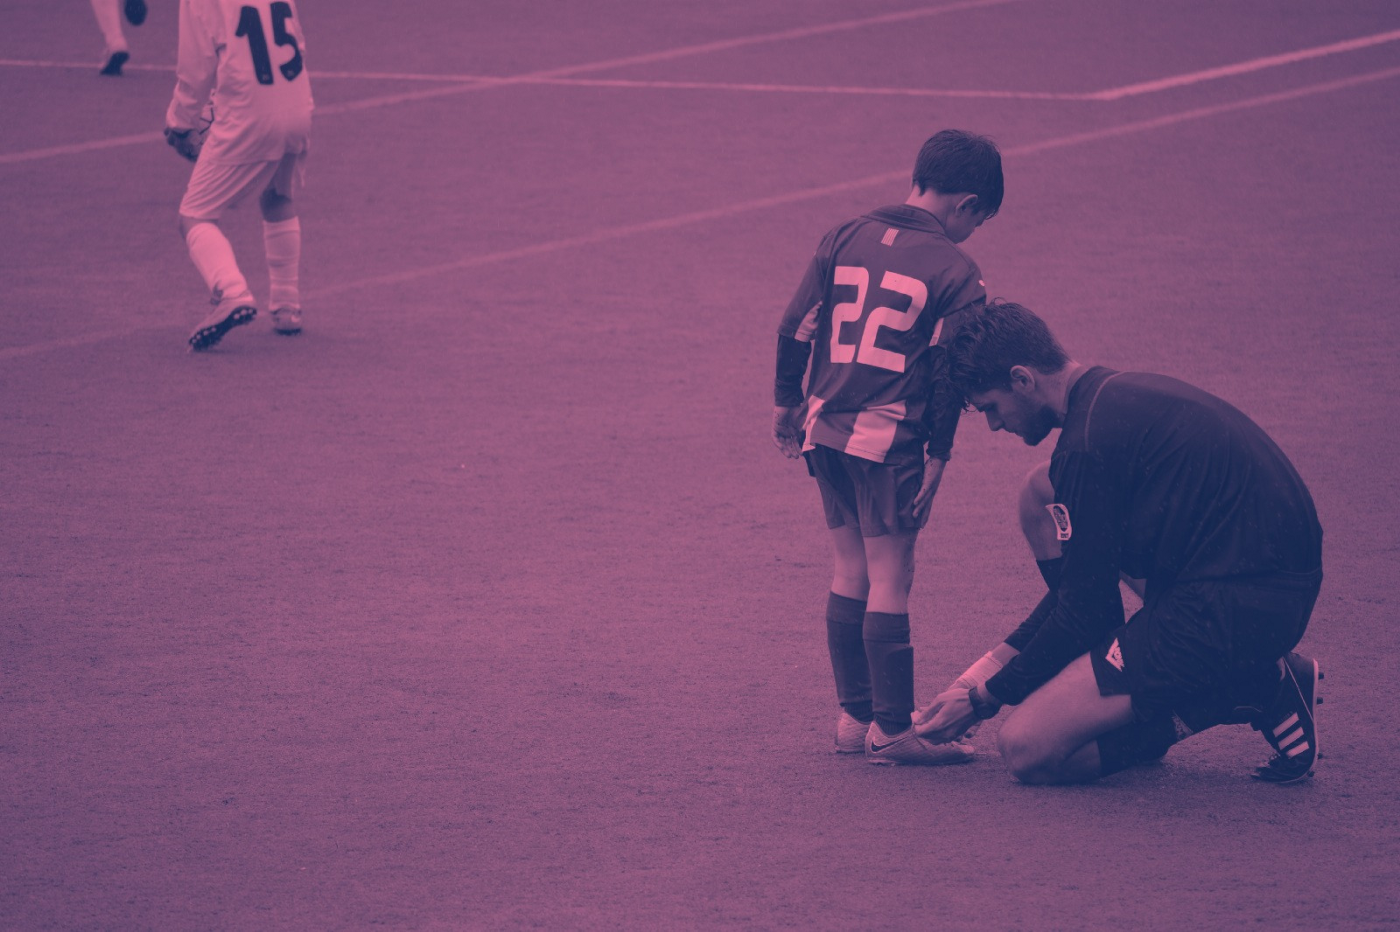 Man tying young soccer player's cleat